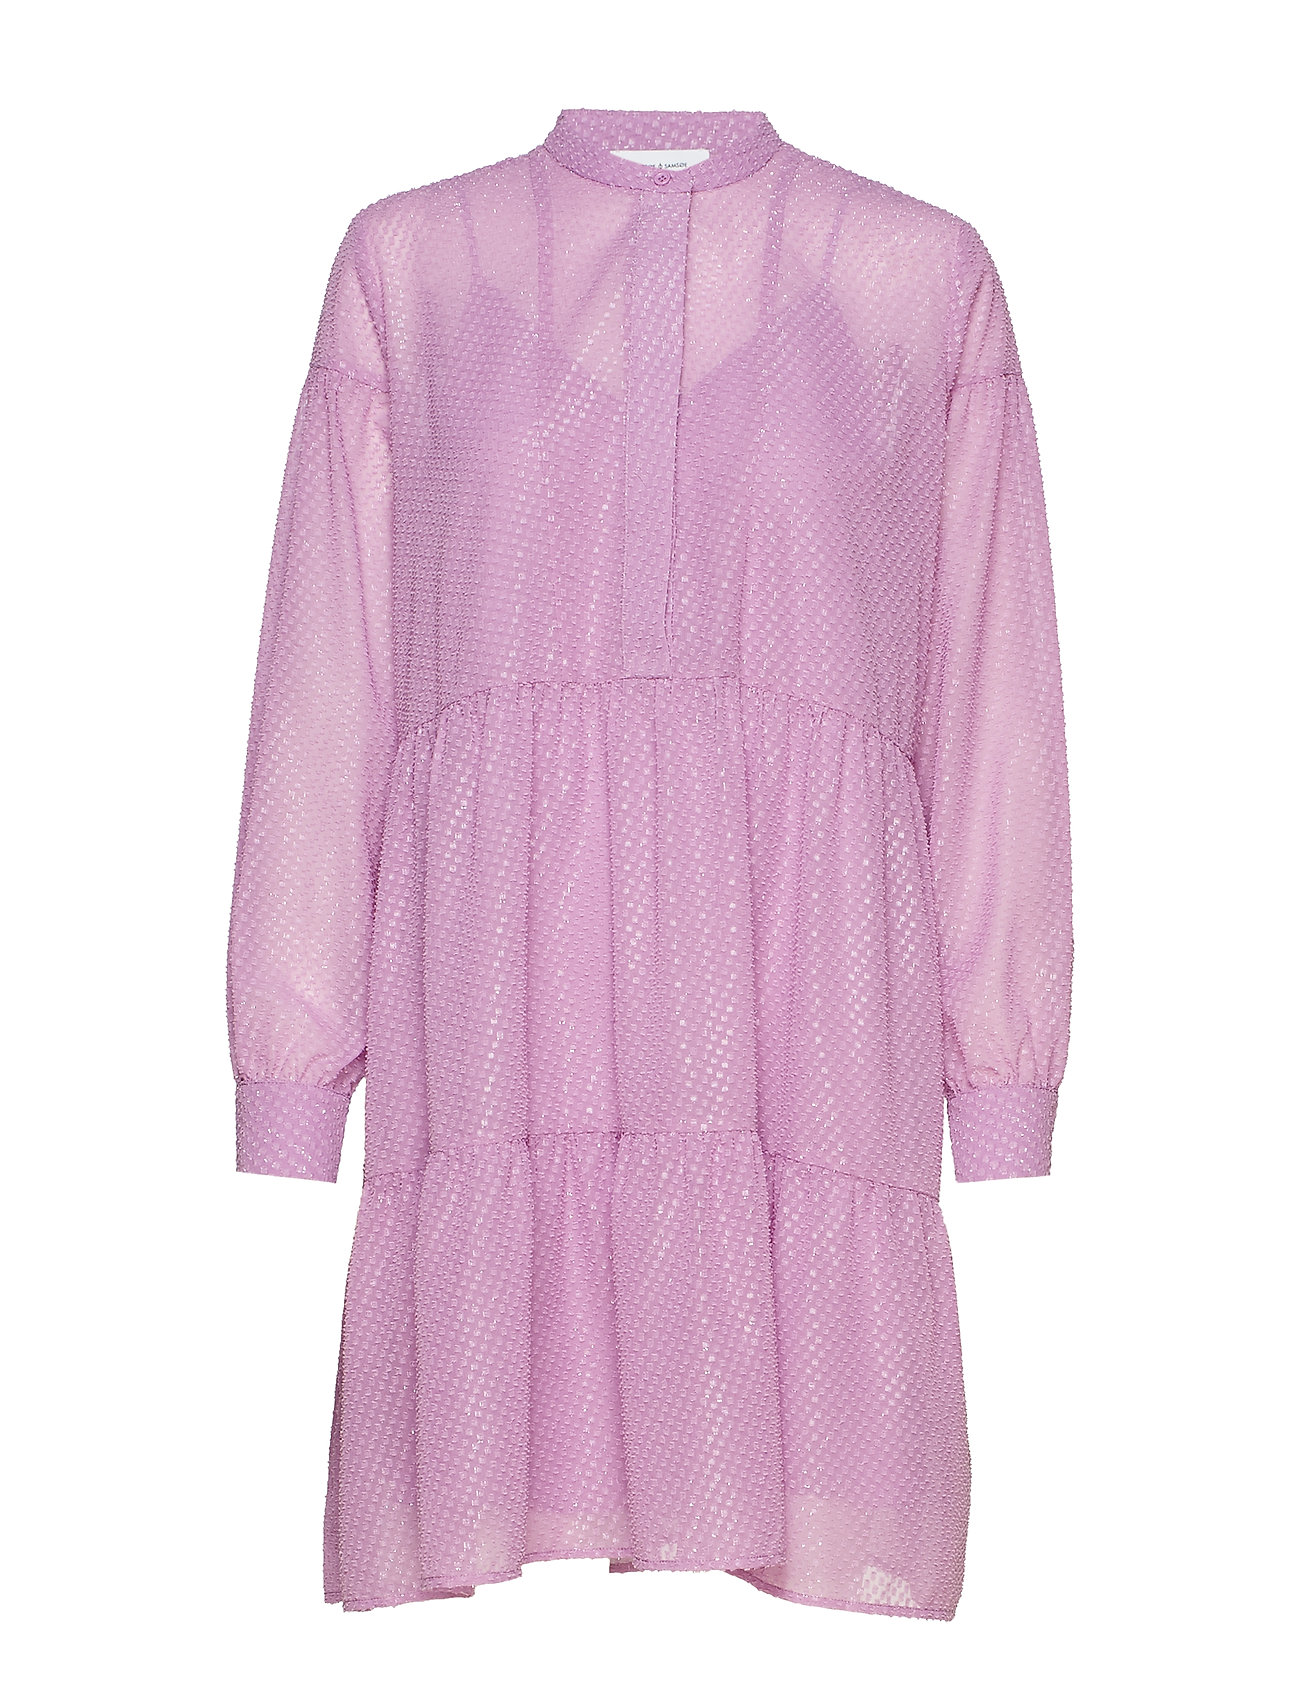 Samsøe & Samsøe Calla shirt dress 11512 - LANGUID LAVENDER